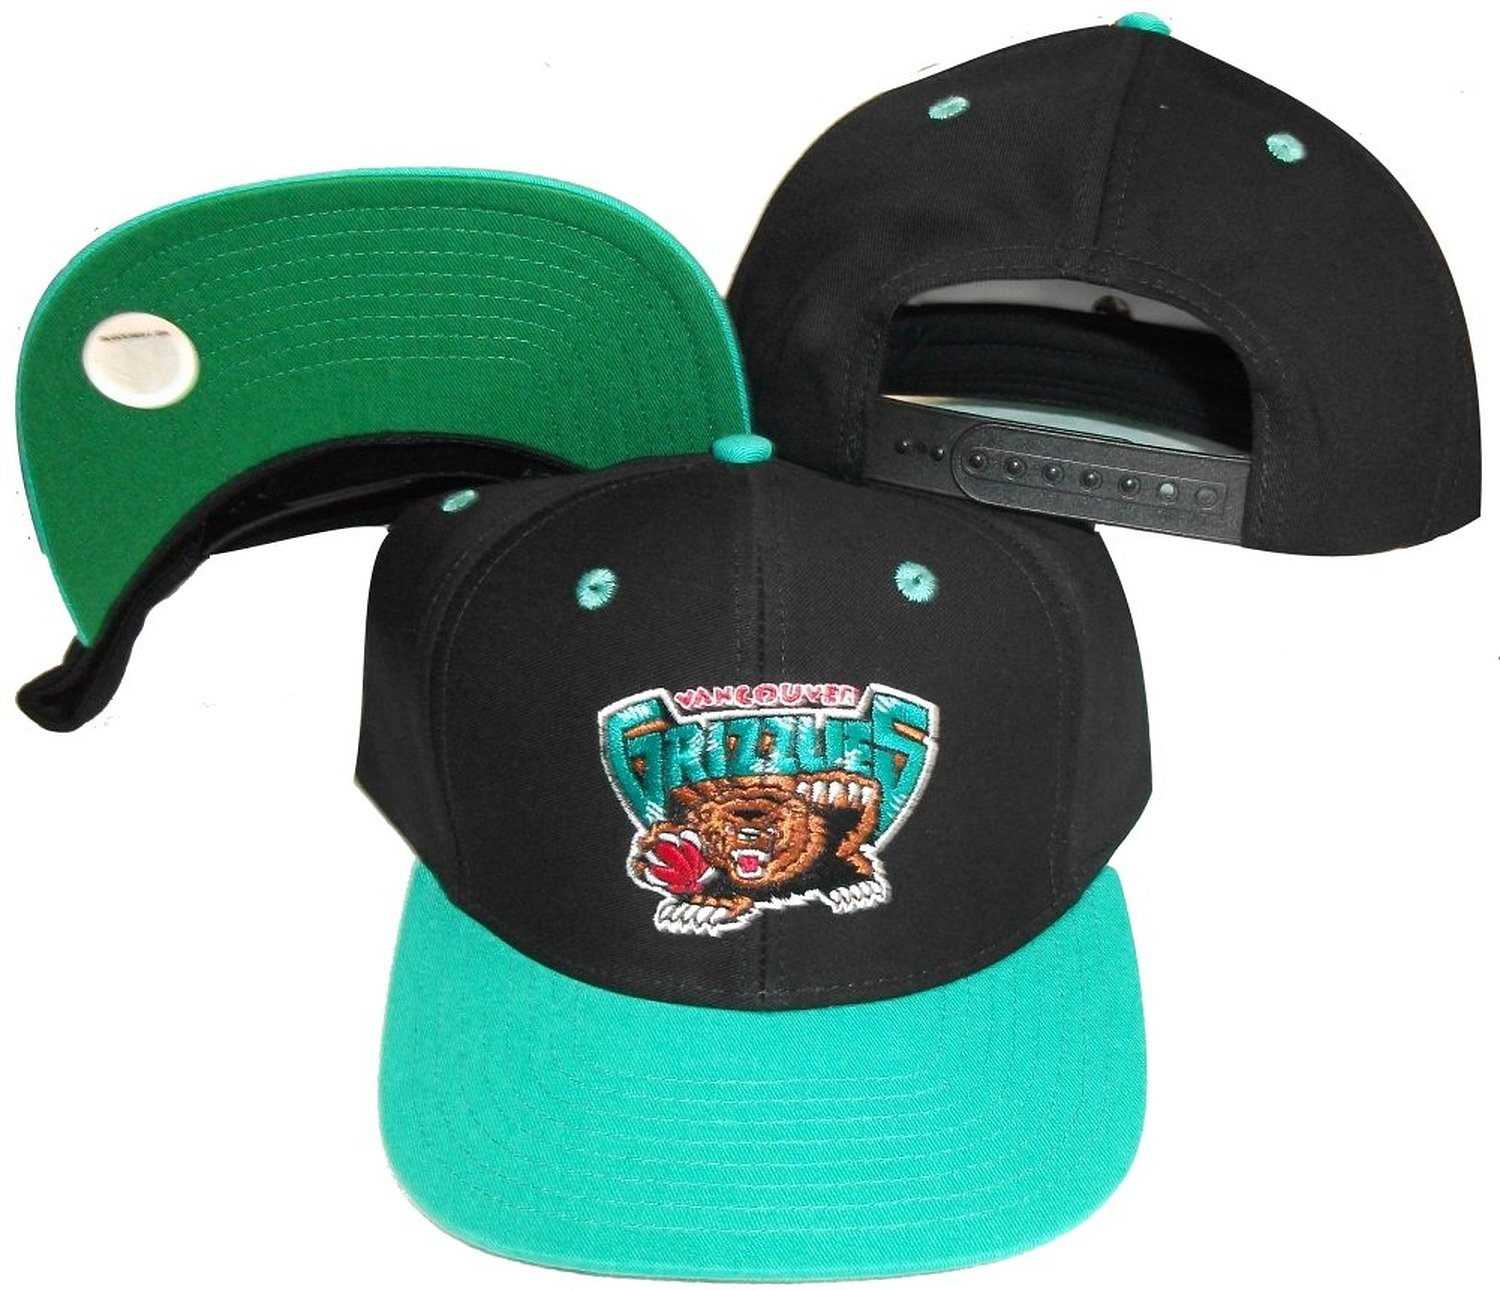 cb1b6af1319 Get Quotations · Vancouver Grizzlies Black Teal Two Tone Snapback  Adjustable Plastic Snap Back Hat   Cap